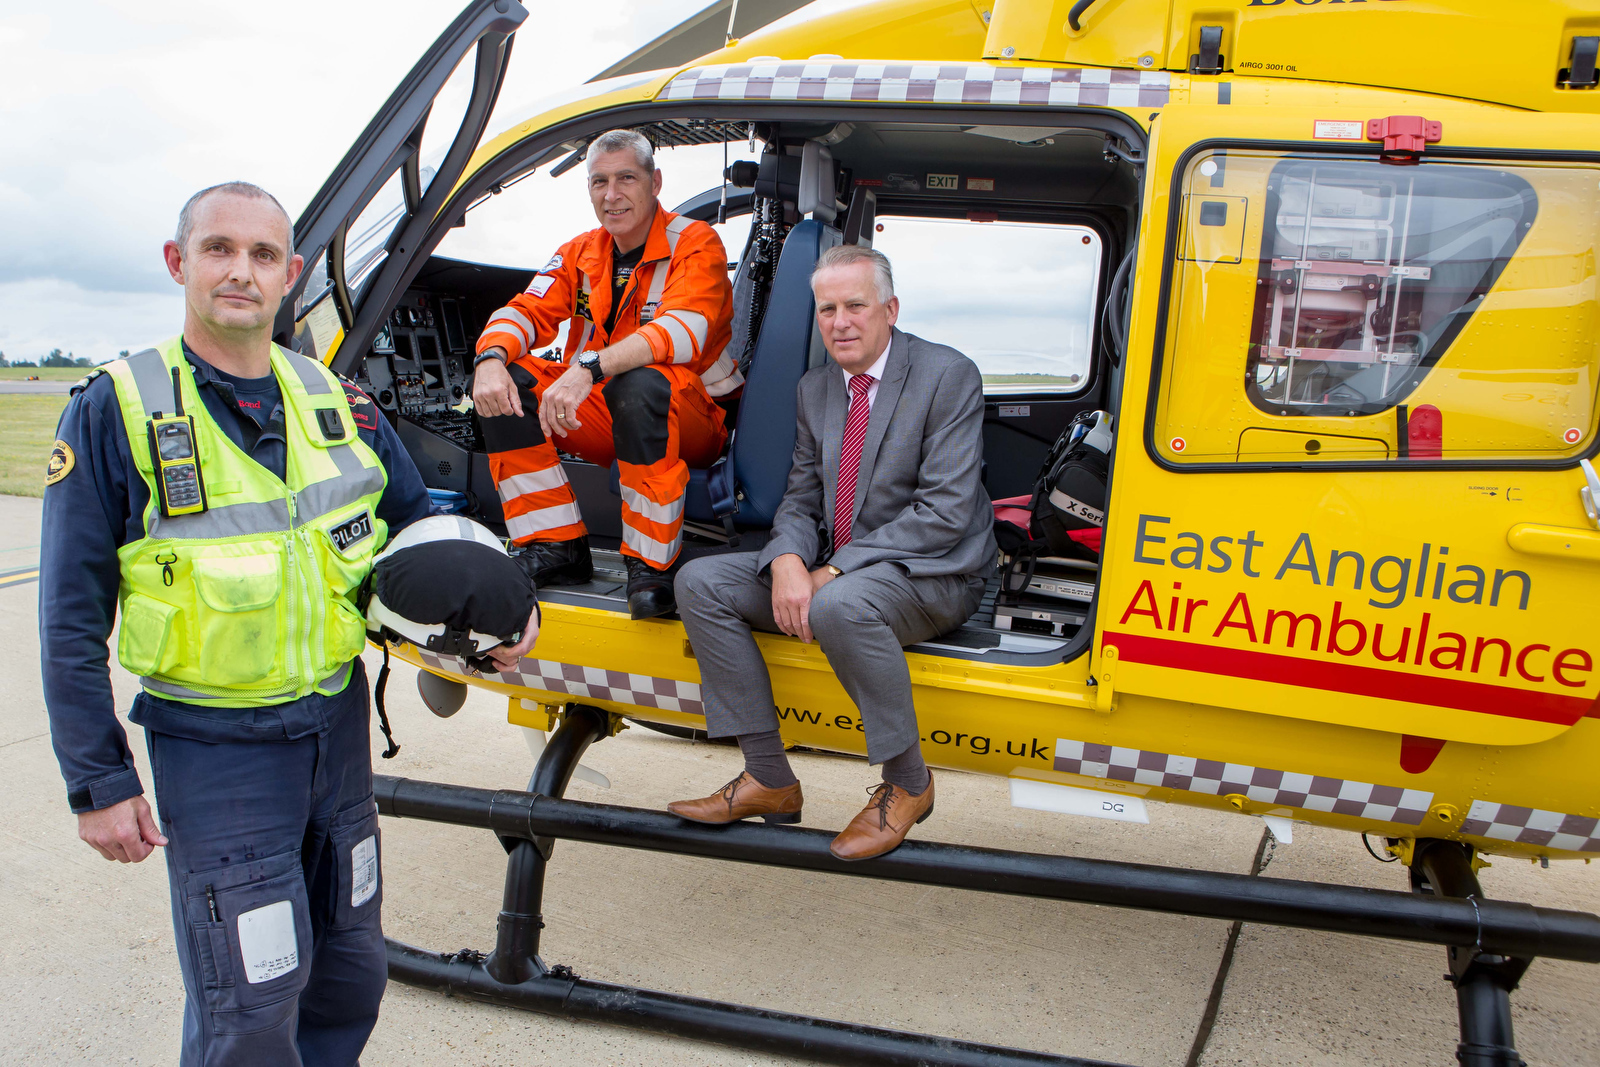 Norfolk Commercial Photography - East Anglian Air Ambulance